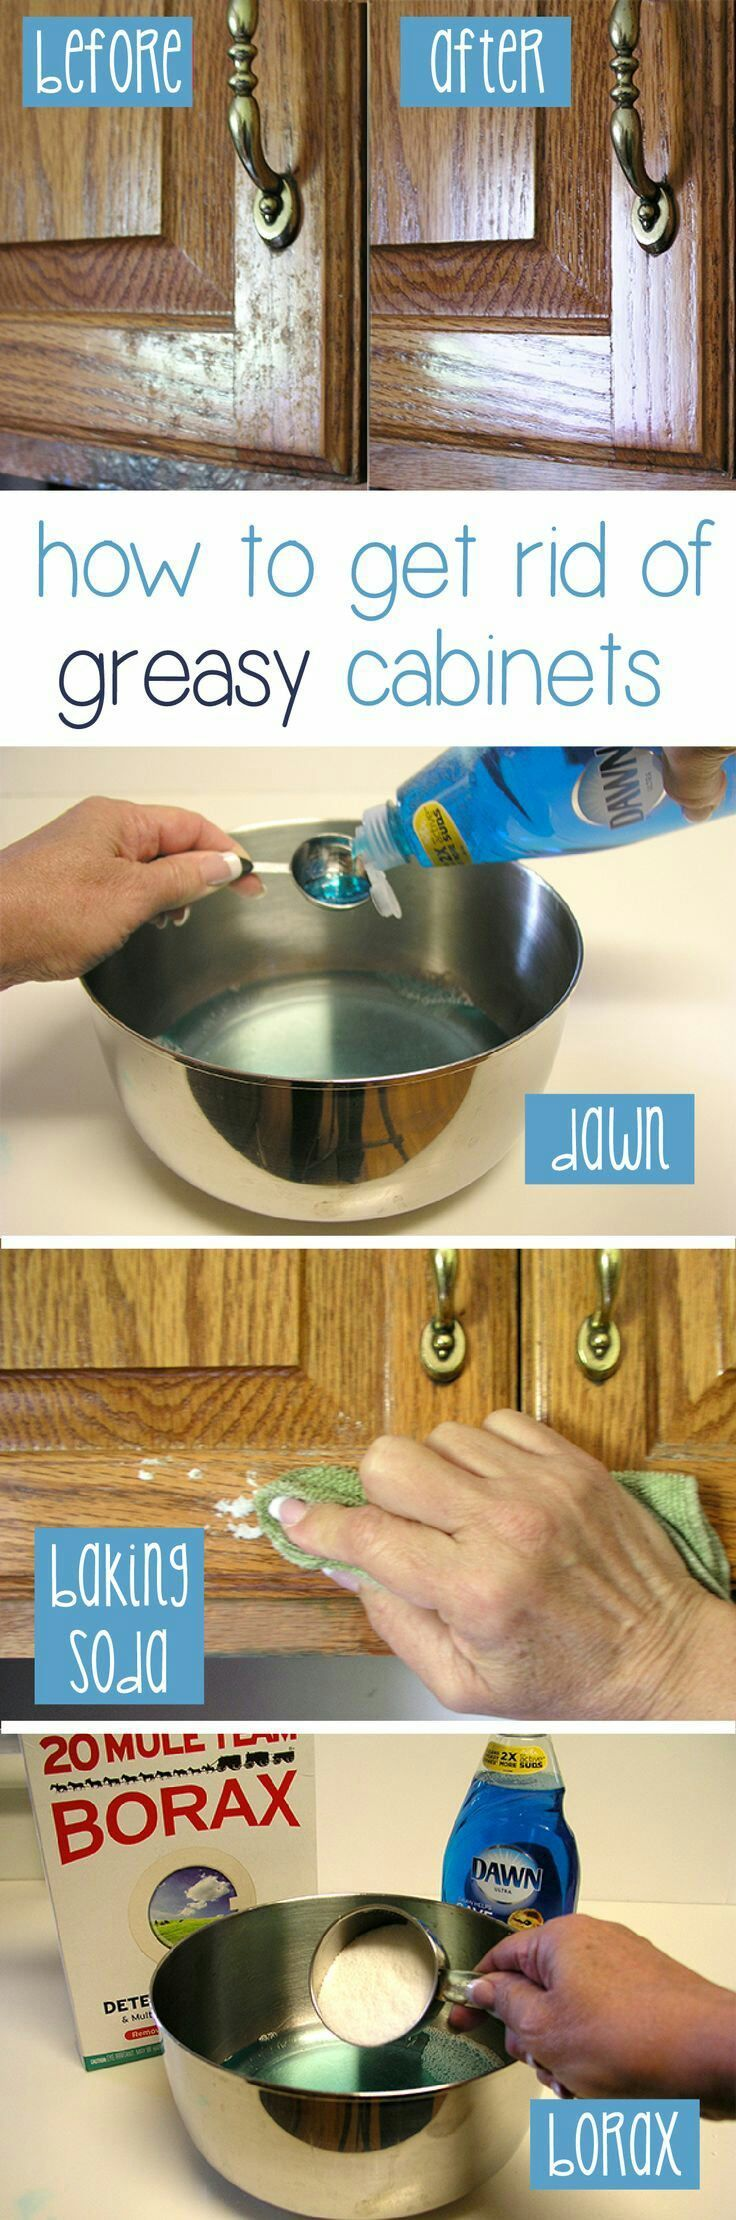 Cleaning Kitchen Cabinets Is Important, Especially Grease Stains As They  Usually Go Unnoticed And Grow